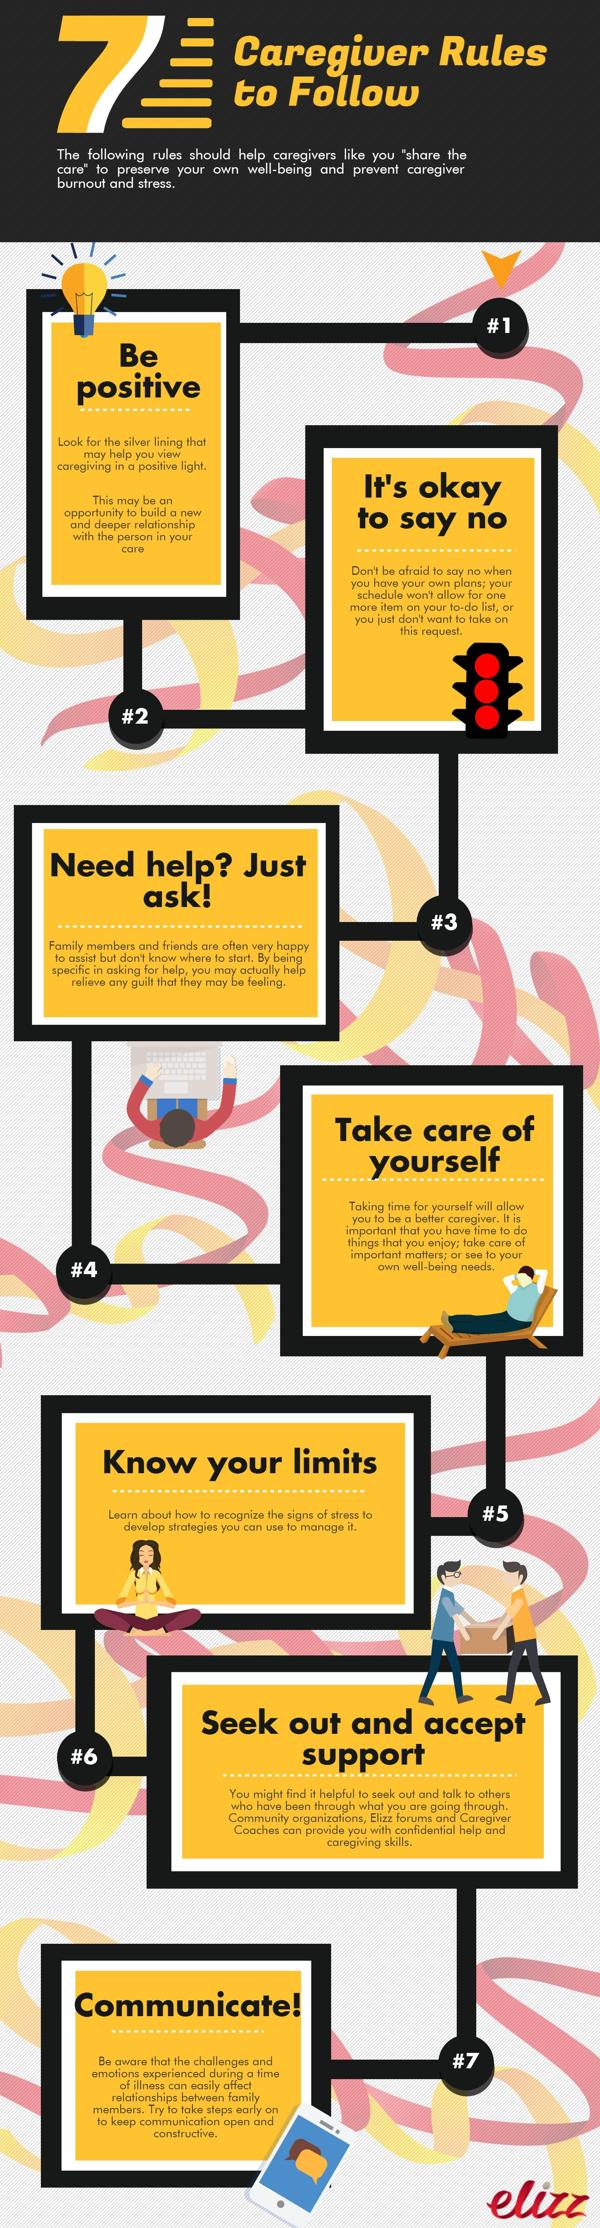 rules for caregivers infographic